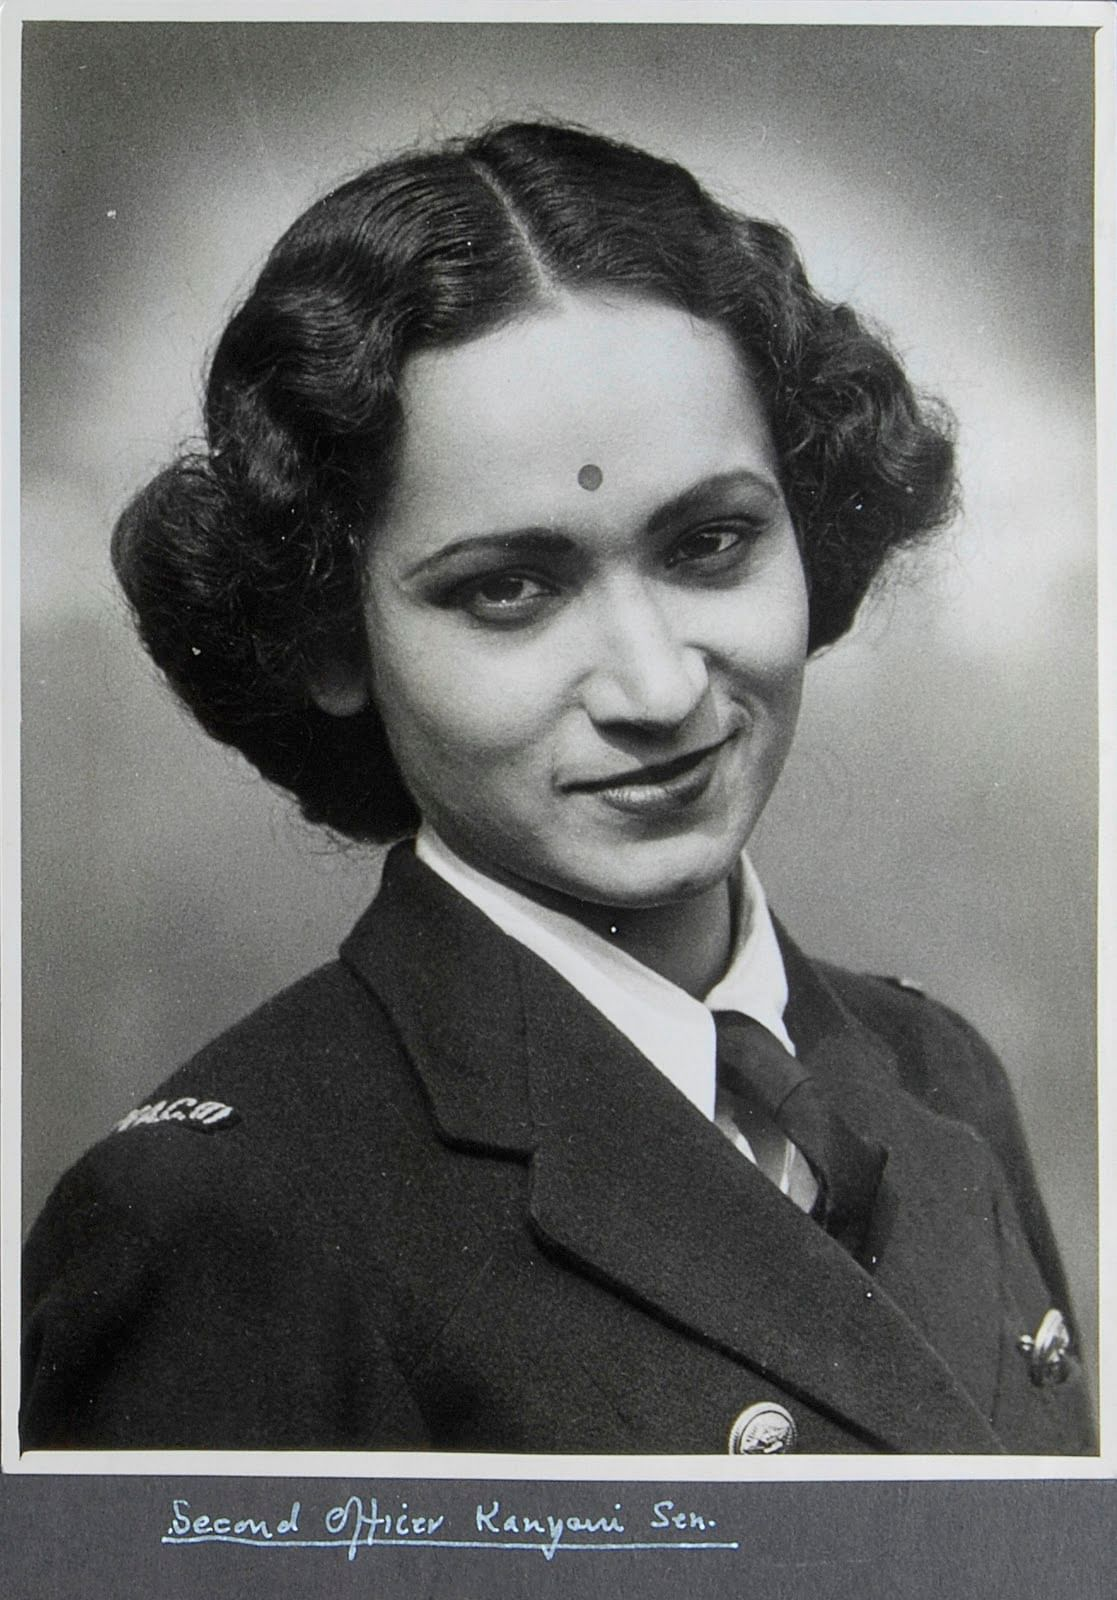 Source: http://defenceforumindia.com/forum/threads/extremely-rare-picture-of-an-indian-lady-in-royal-navy-uniform.29065/